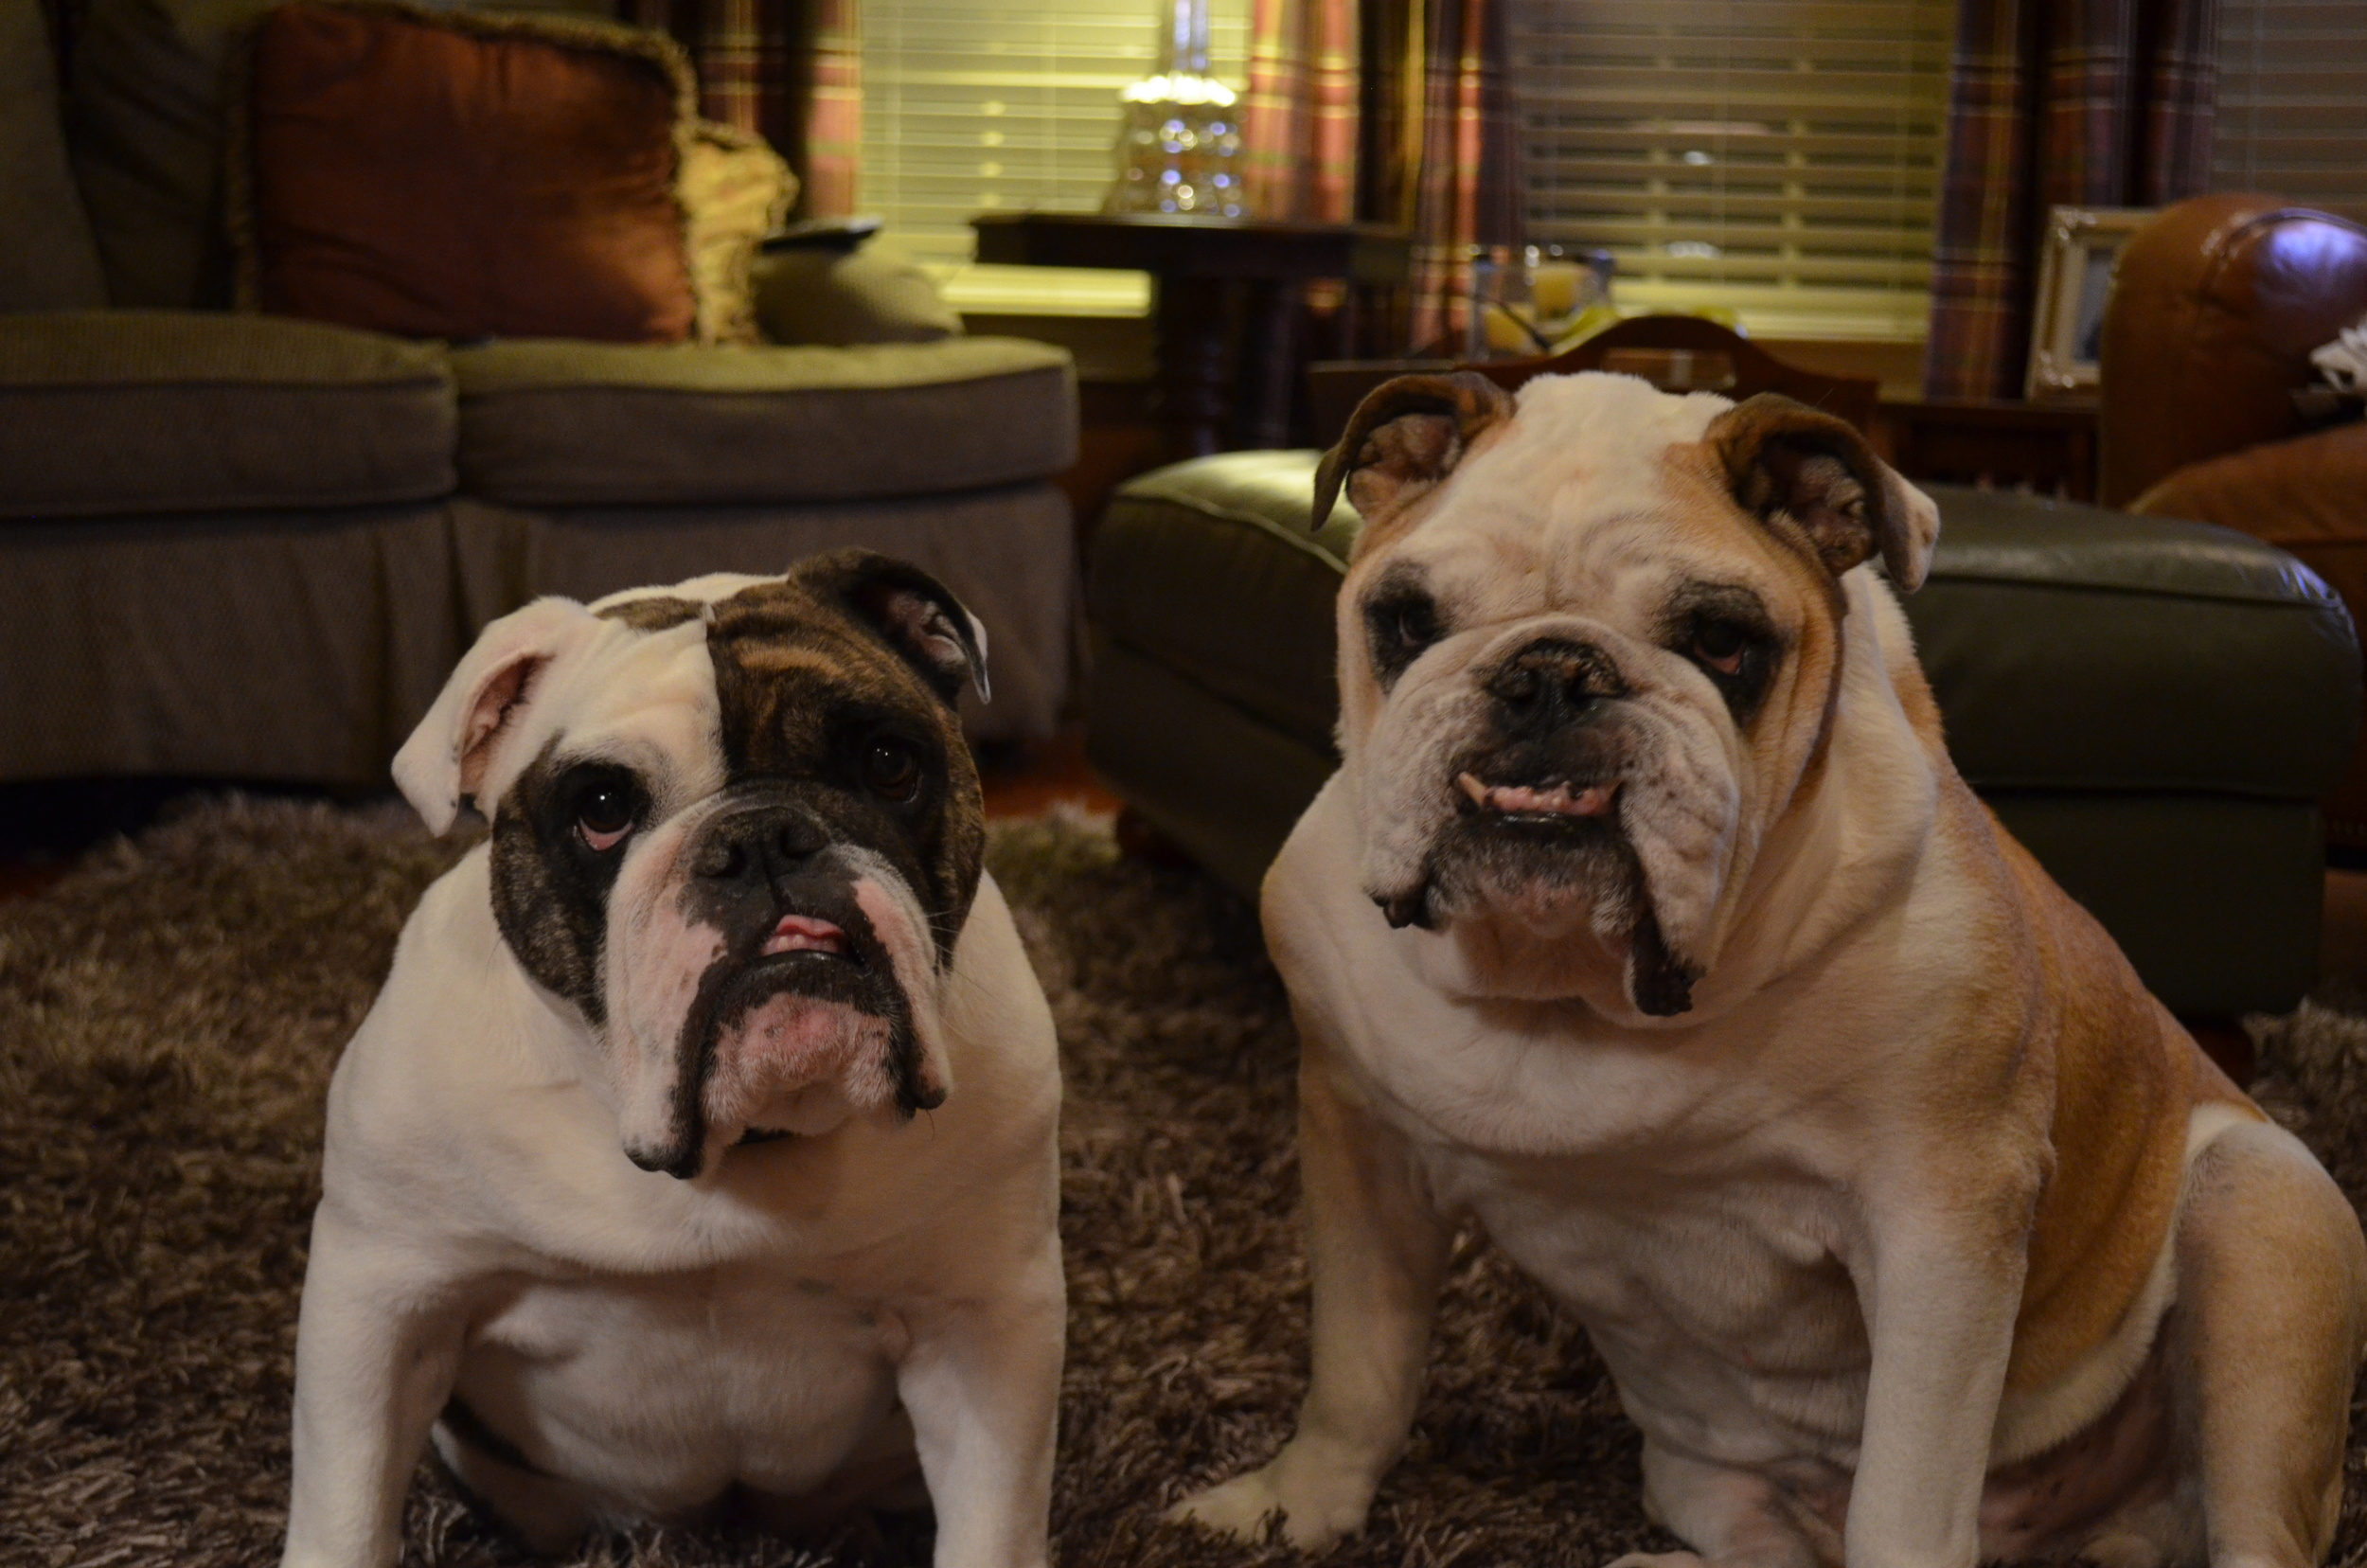 Our sweet bulldogs Roxy and Bruno.....